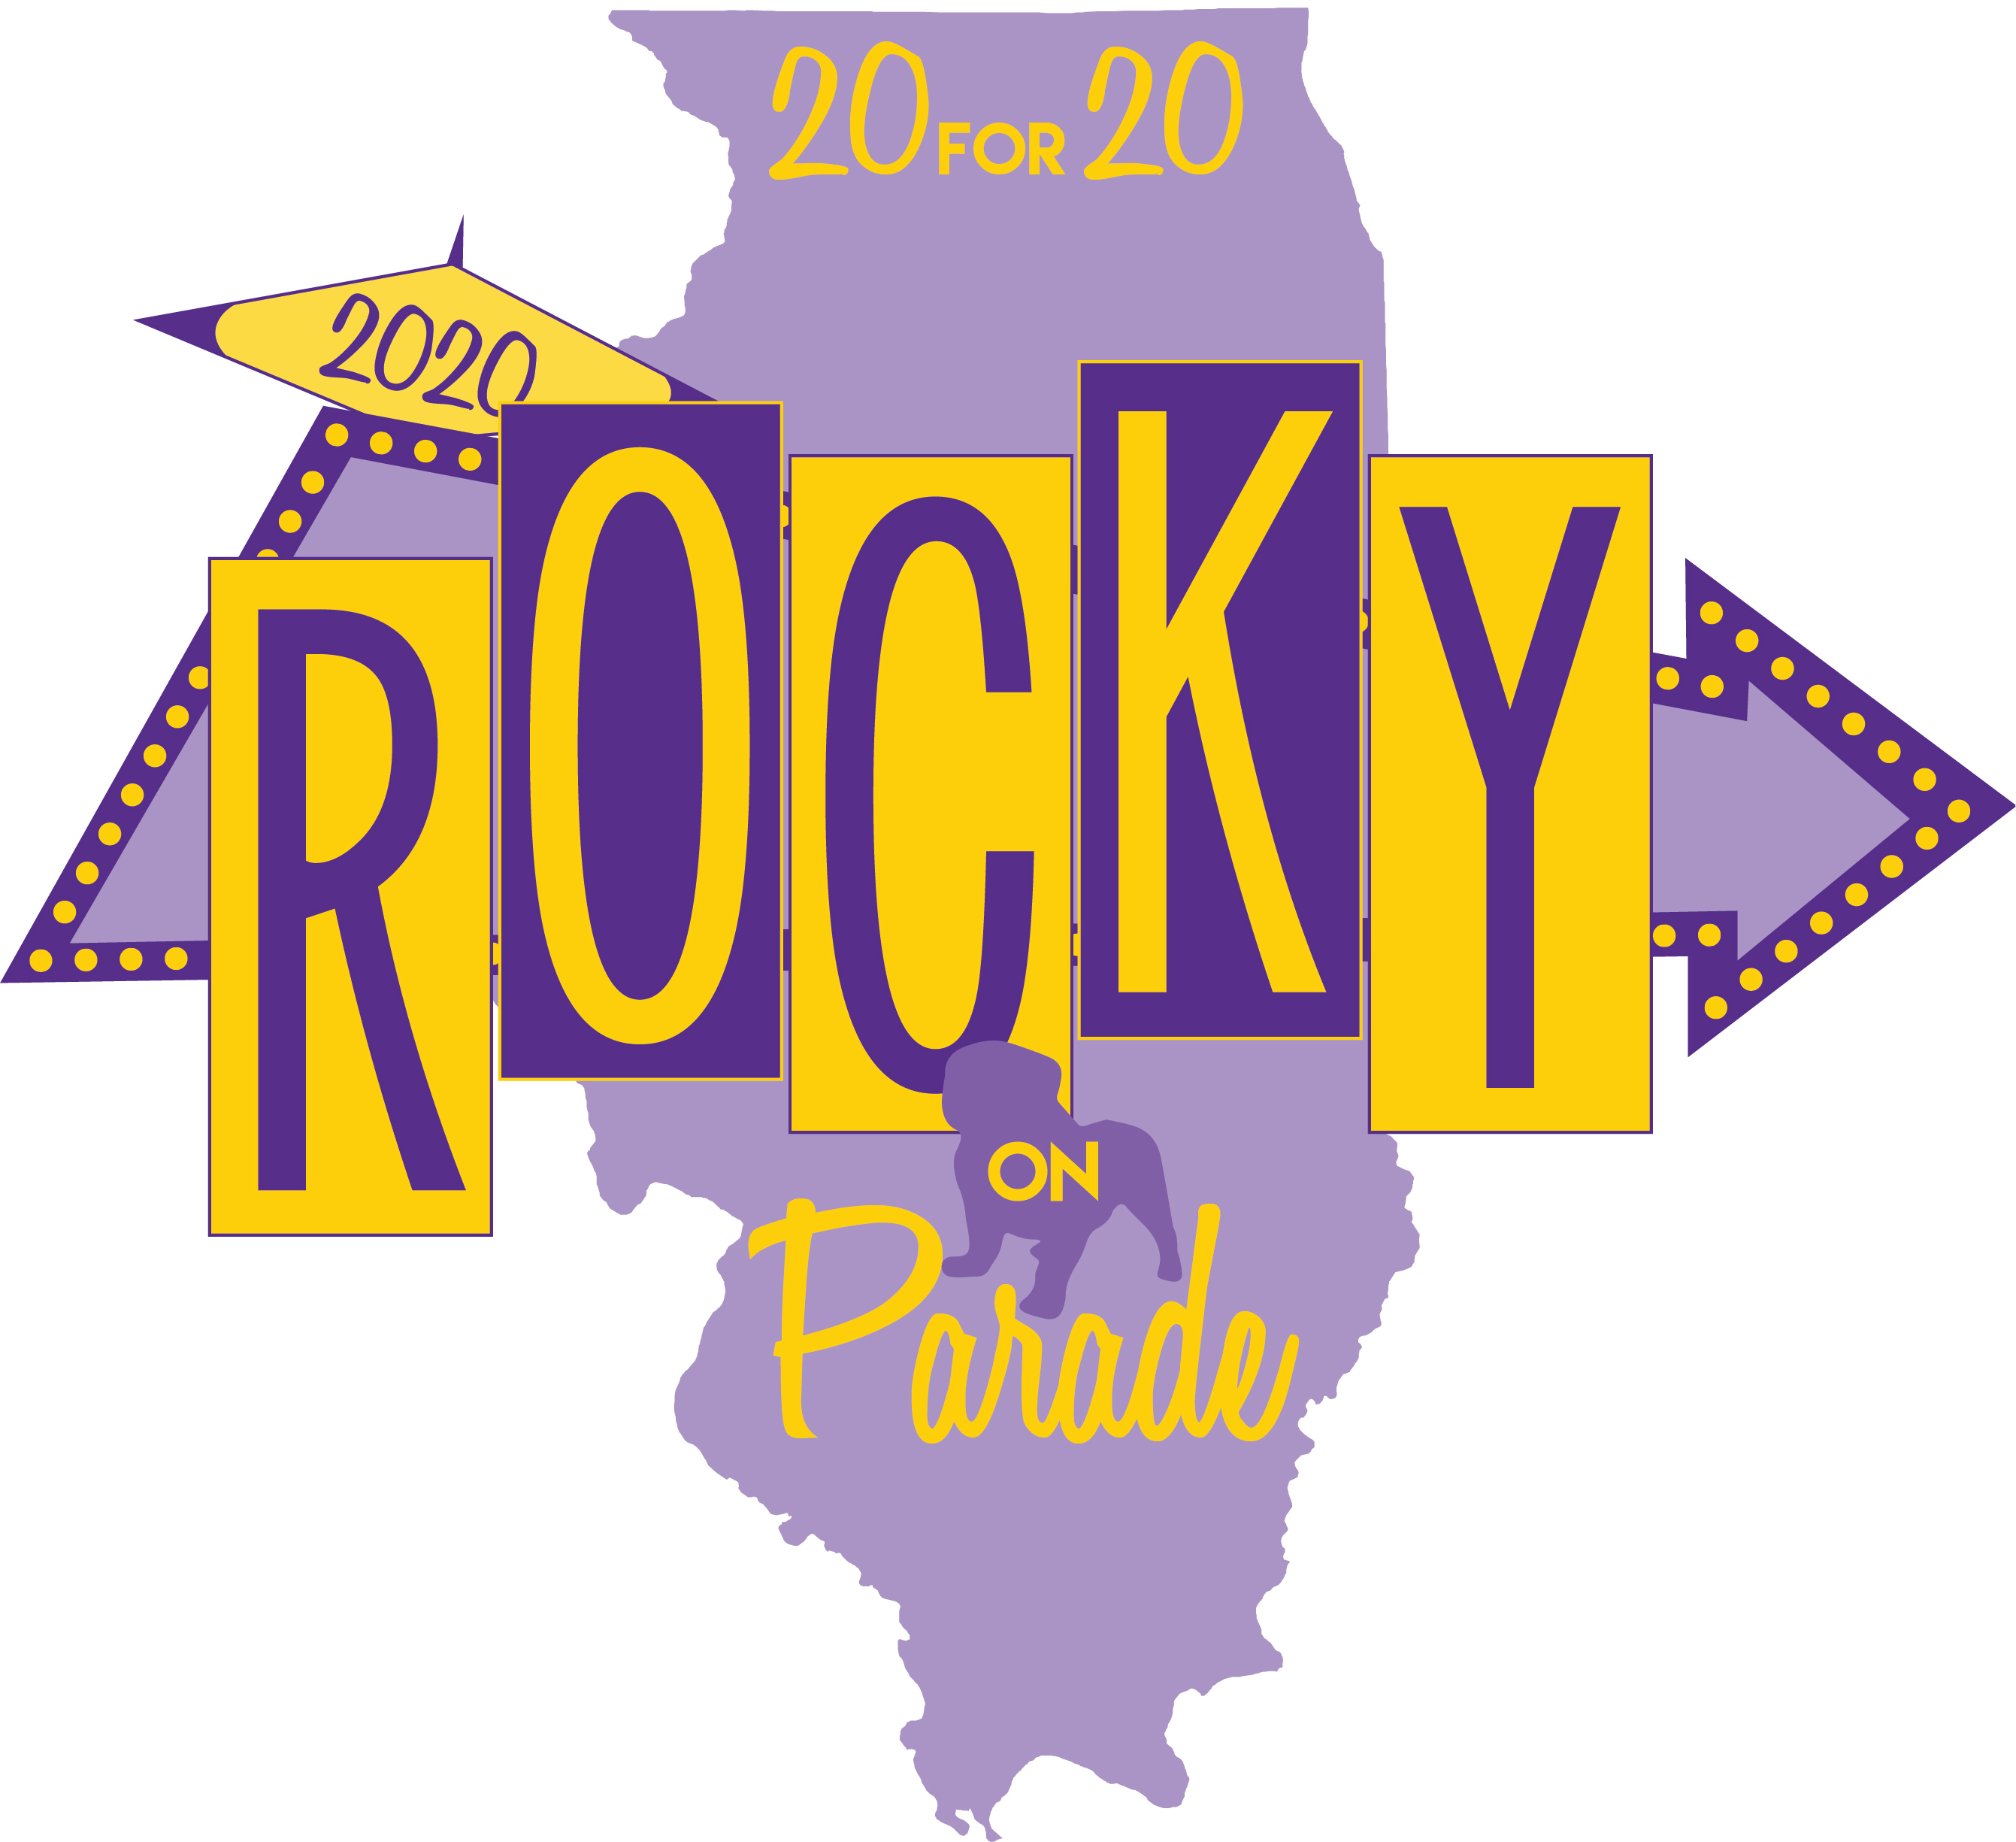 2017 Rocky on Parade logo